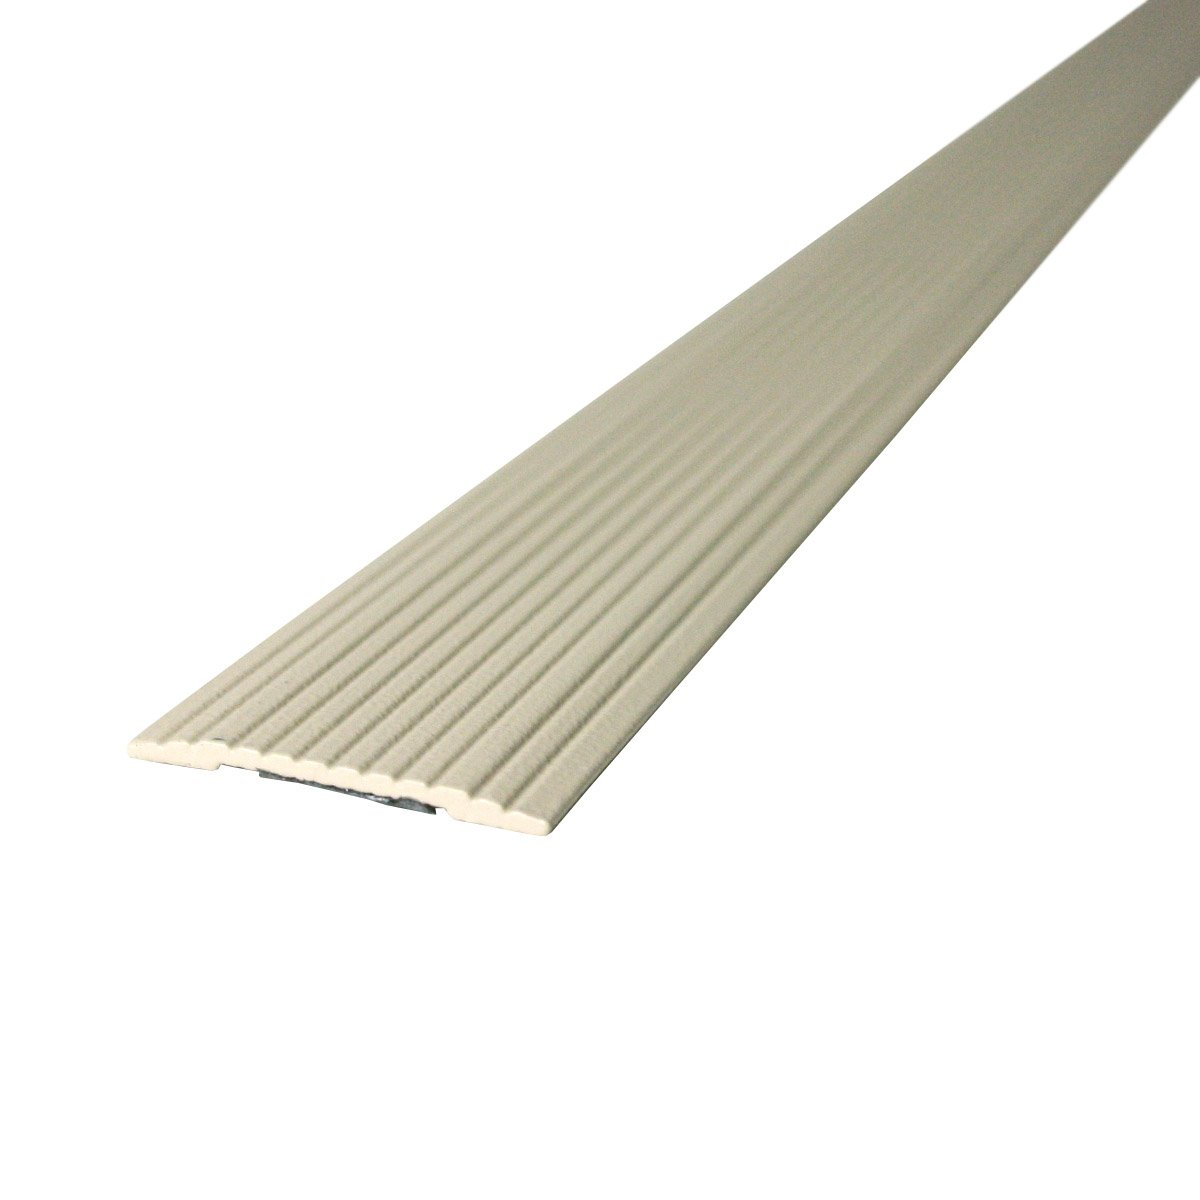 M-D Building Products Cinch Seam Cover (Fluted) 36'' Beige Beige